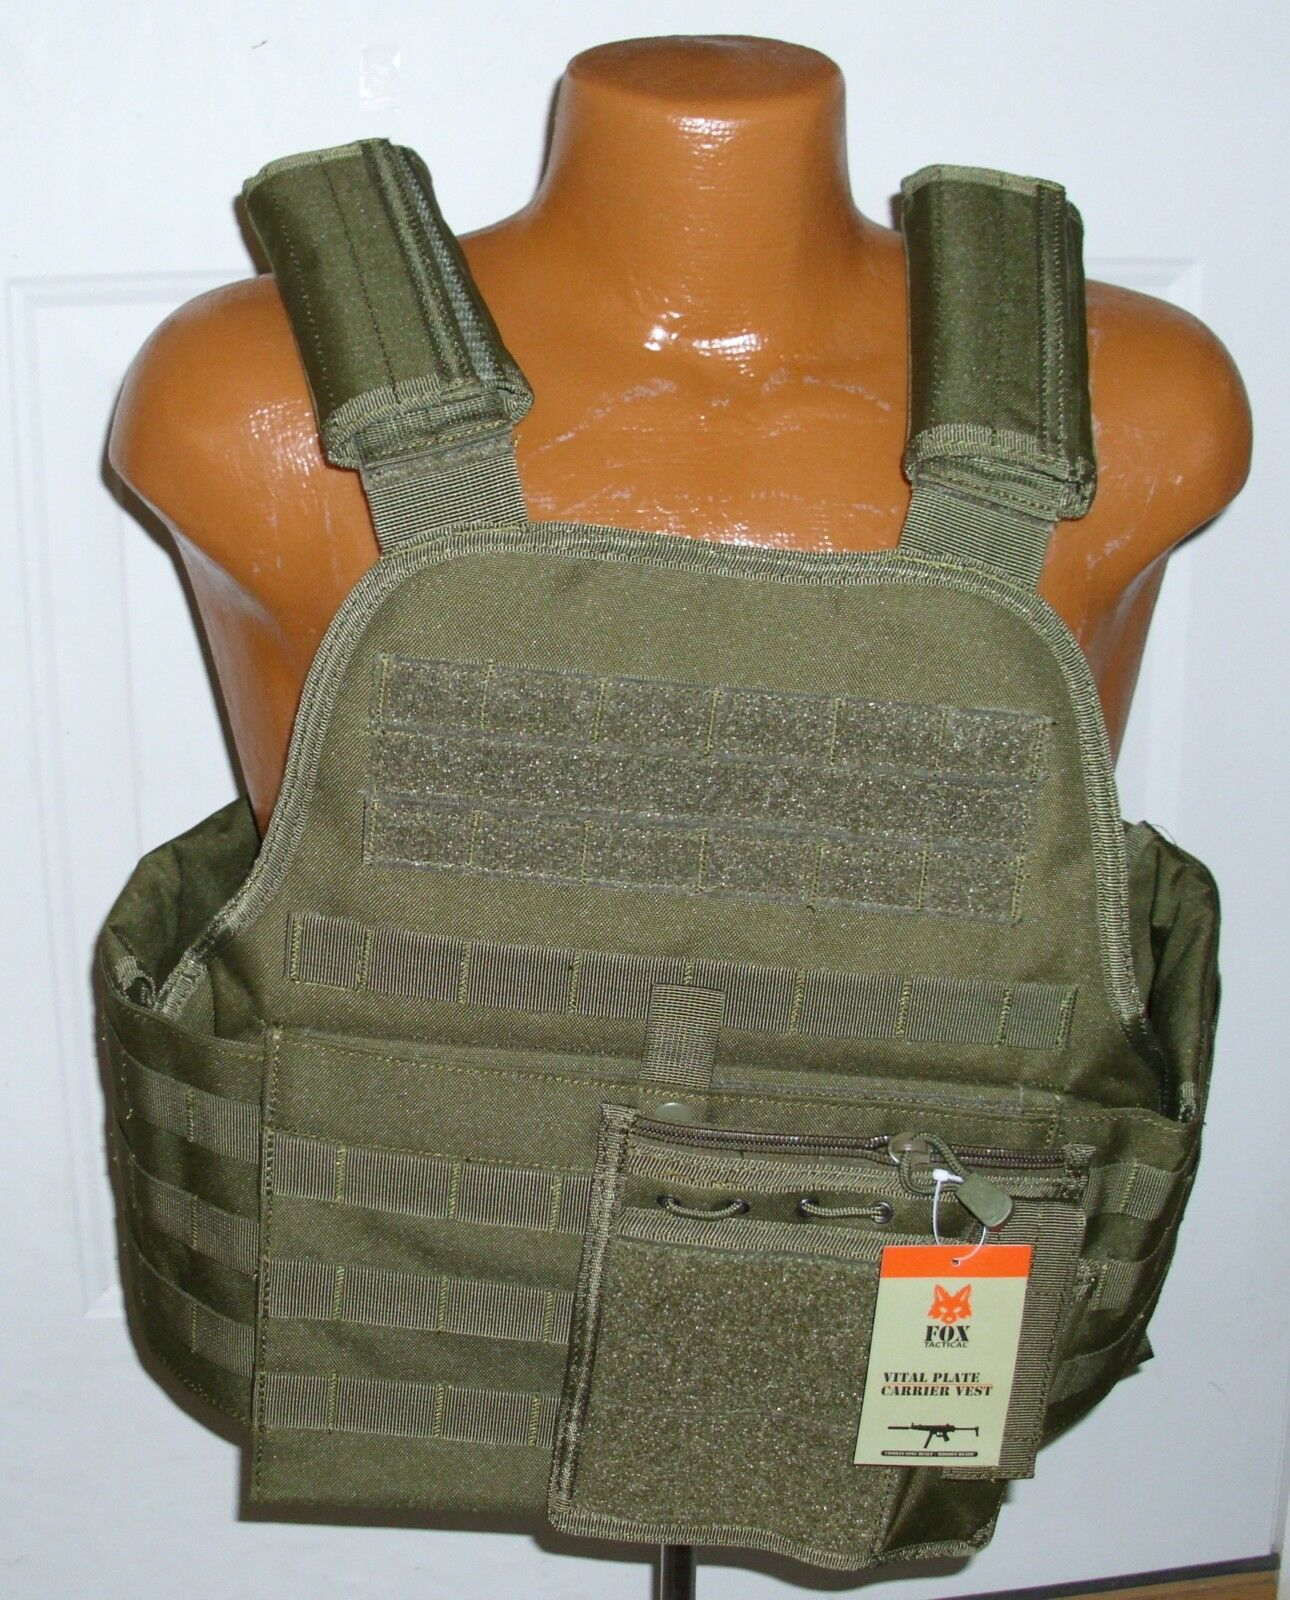 Tactical  Modular Vital MOLLE Plate Armor Carrier Vest - OD GREEN OLIVE DRAB  considerate service